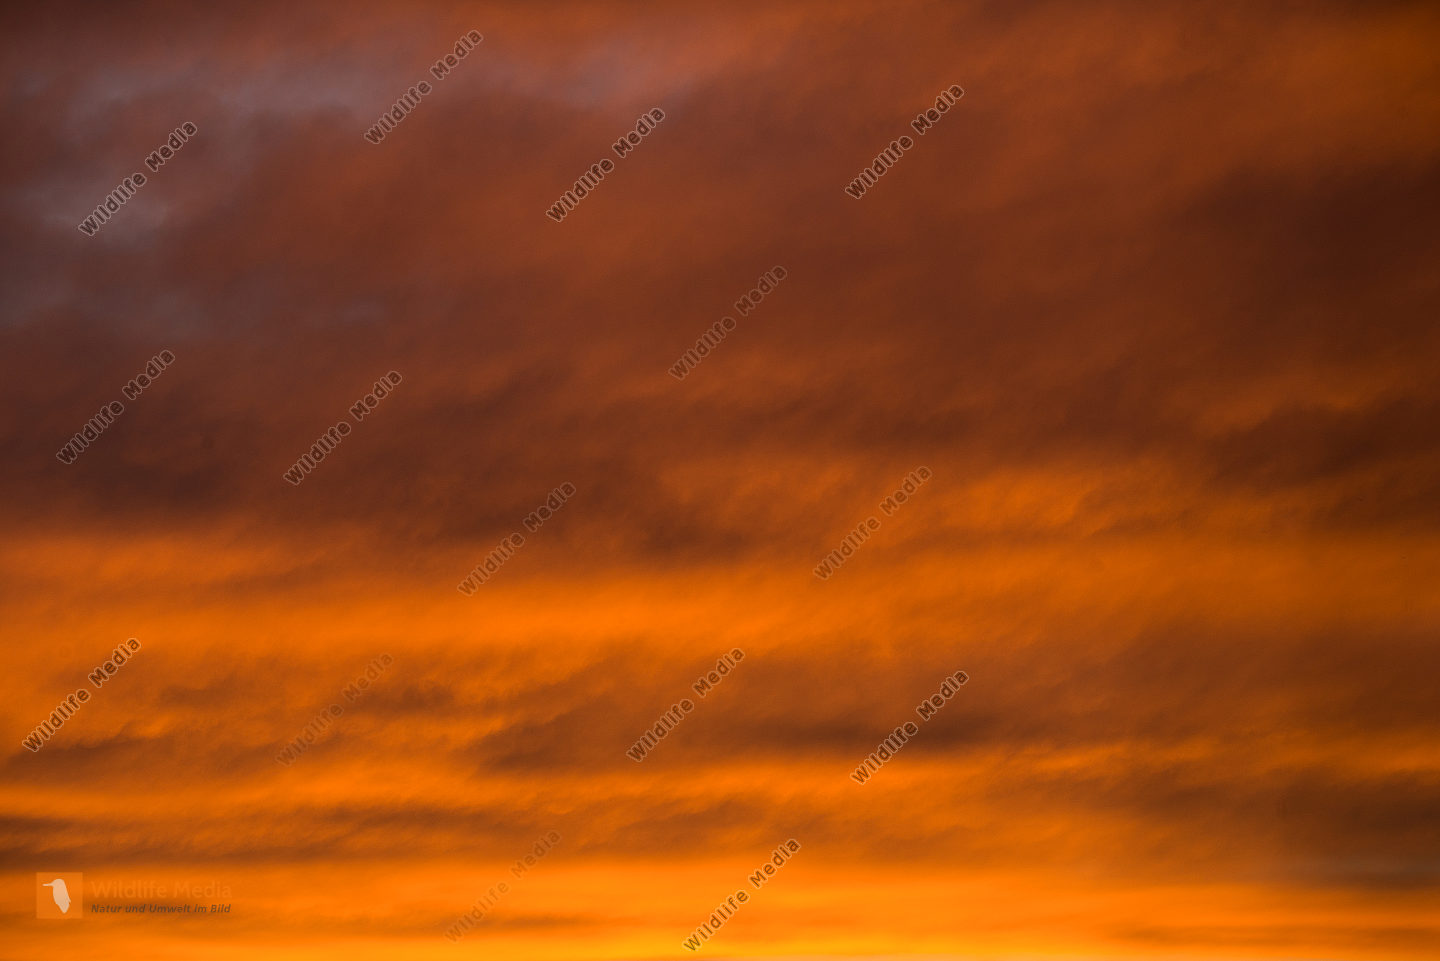 Wolkenstimmung am Abend / sunset clouds